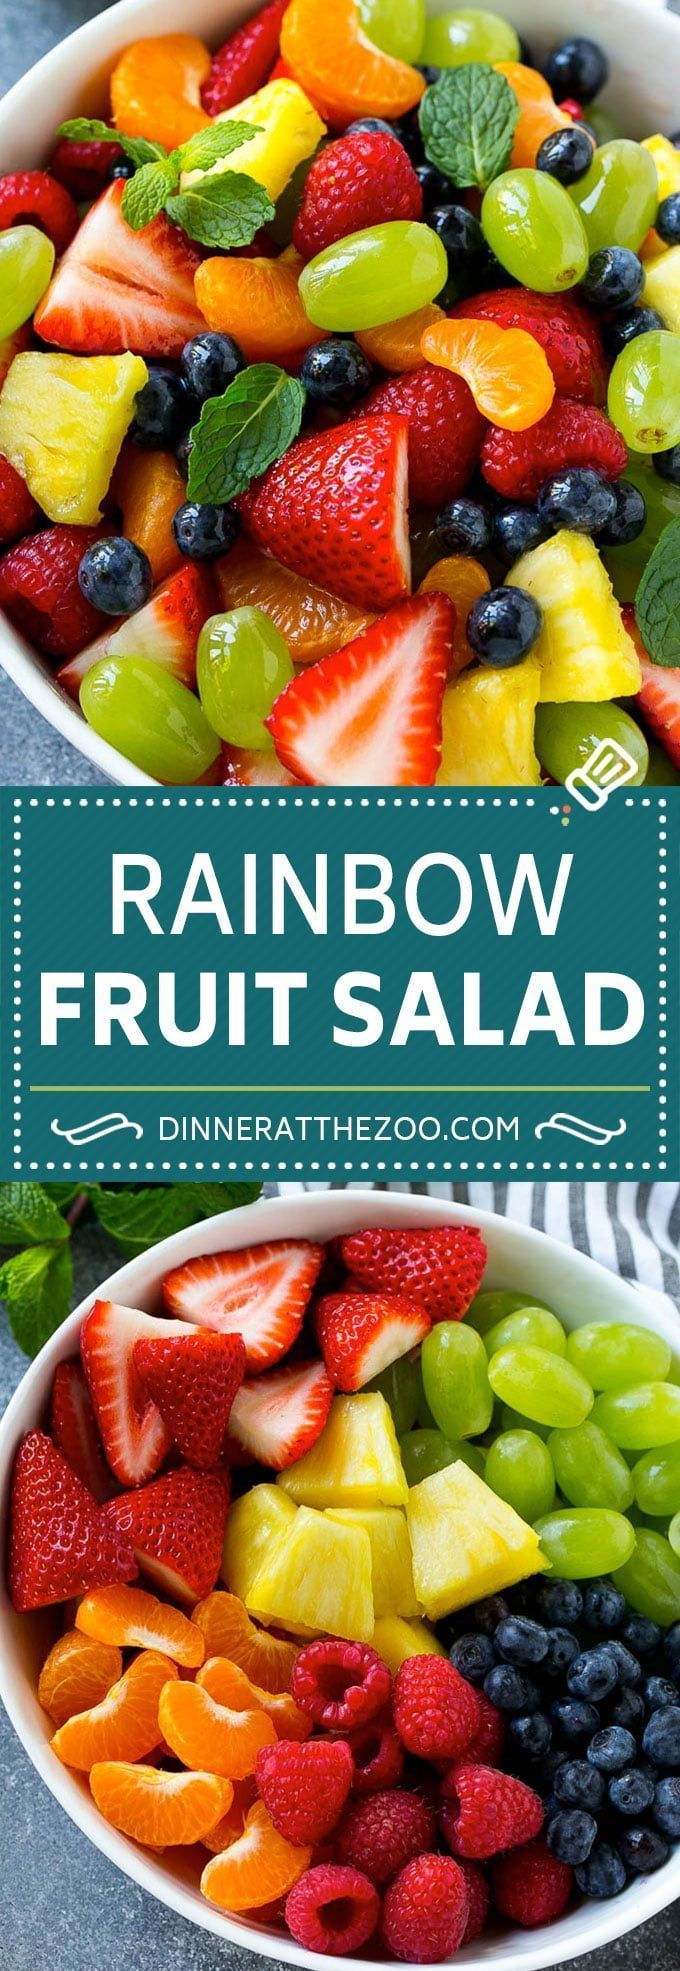 40 Fruit Salad Recipes - Dinner at the Zoo